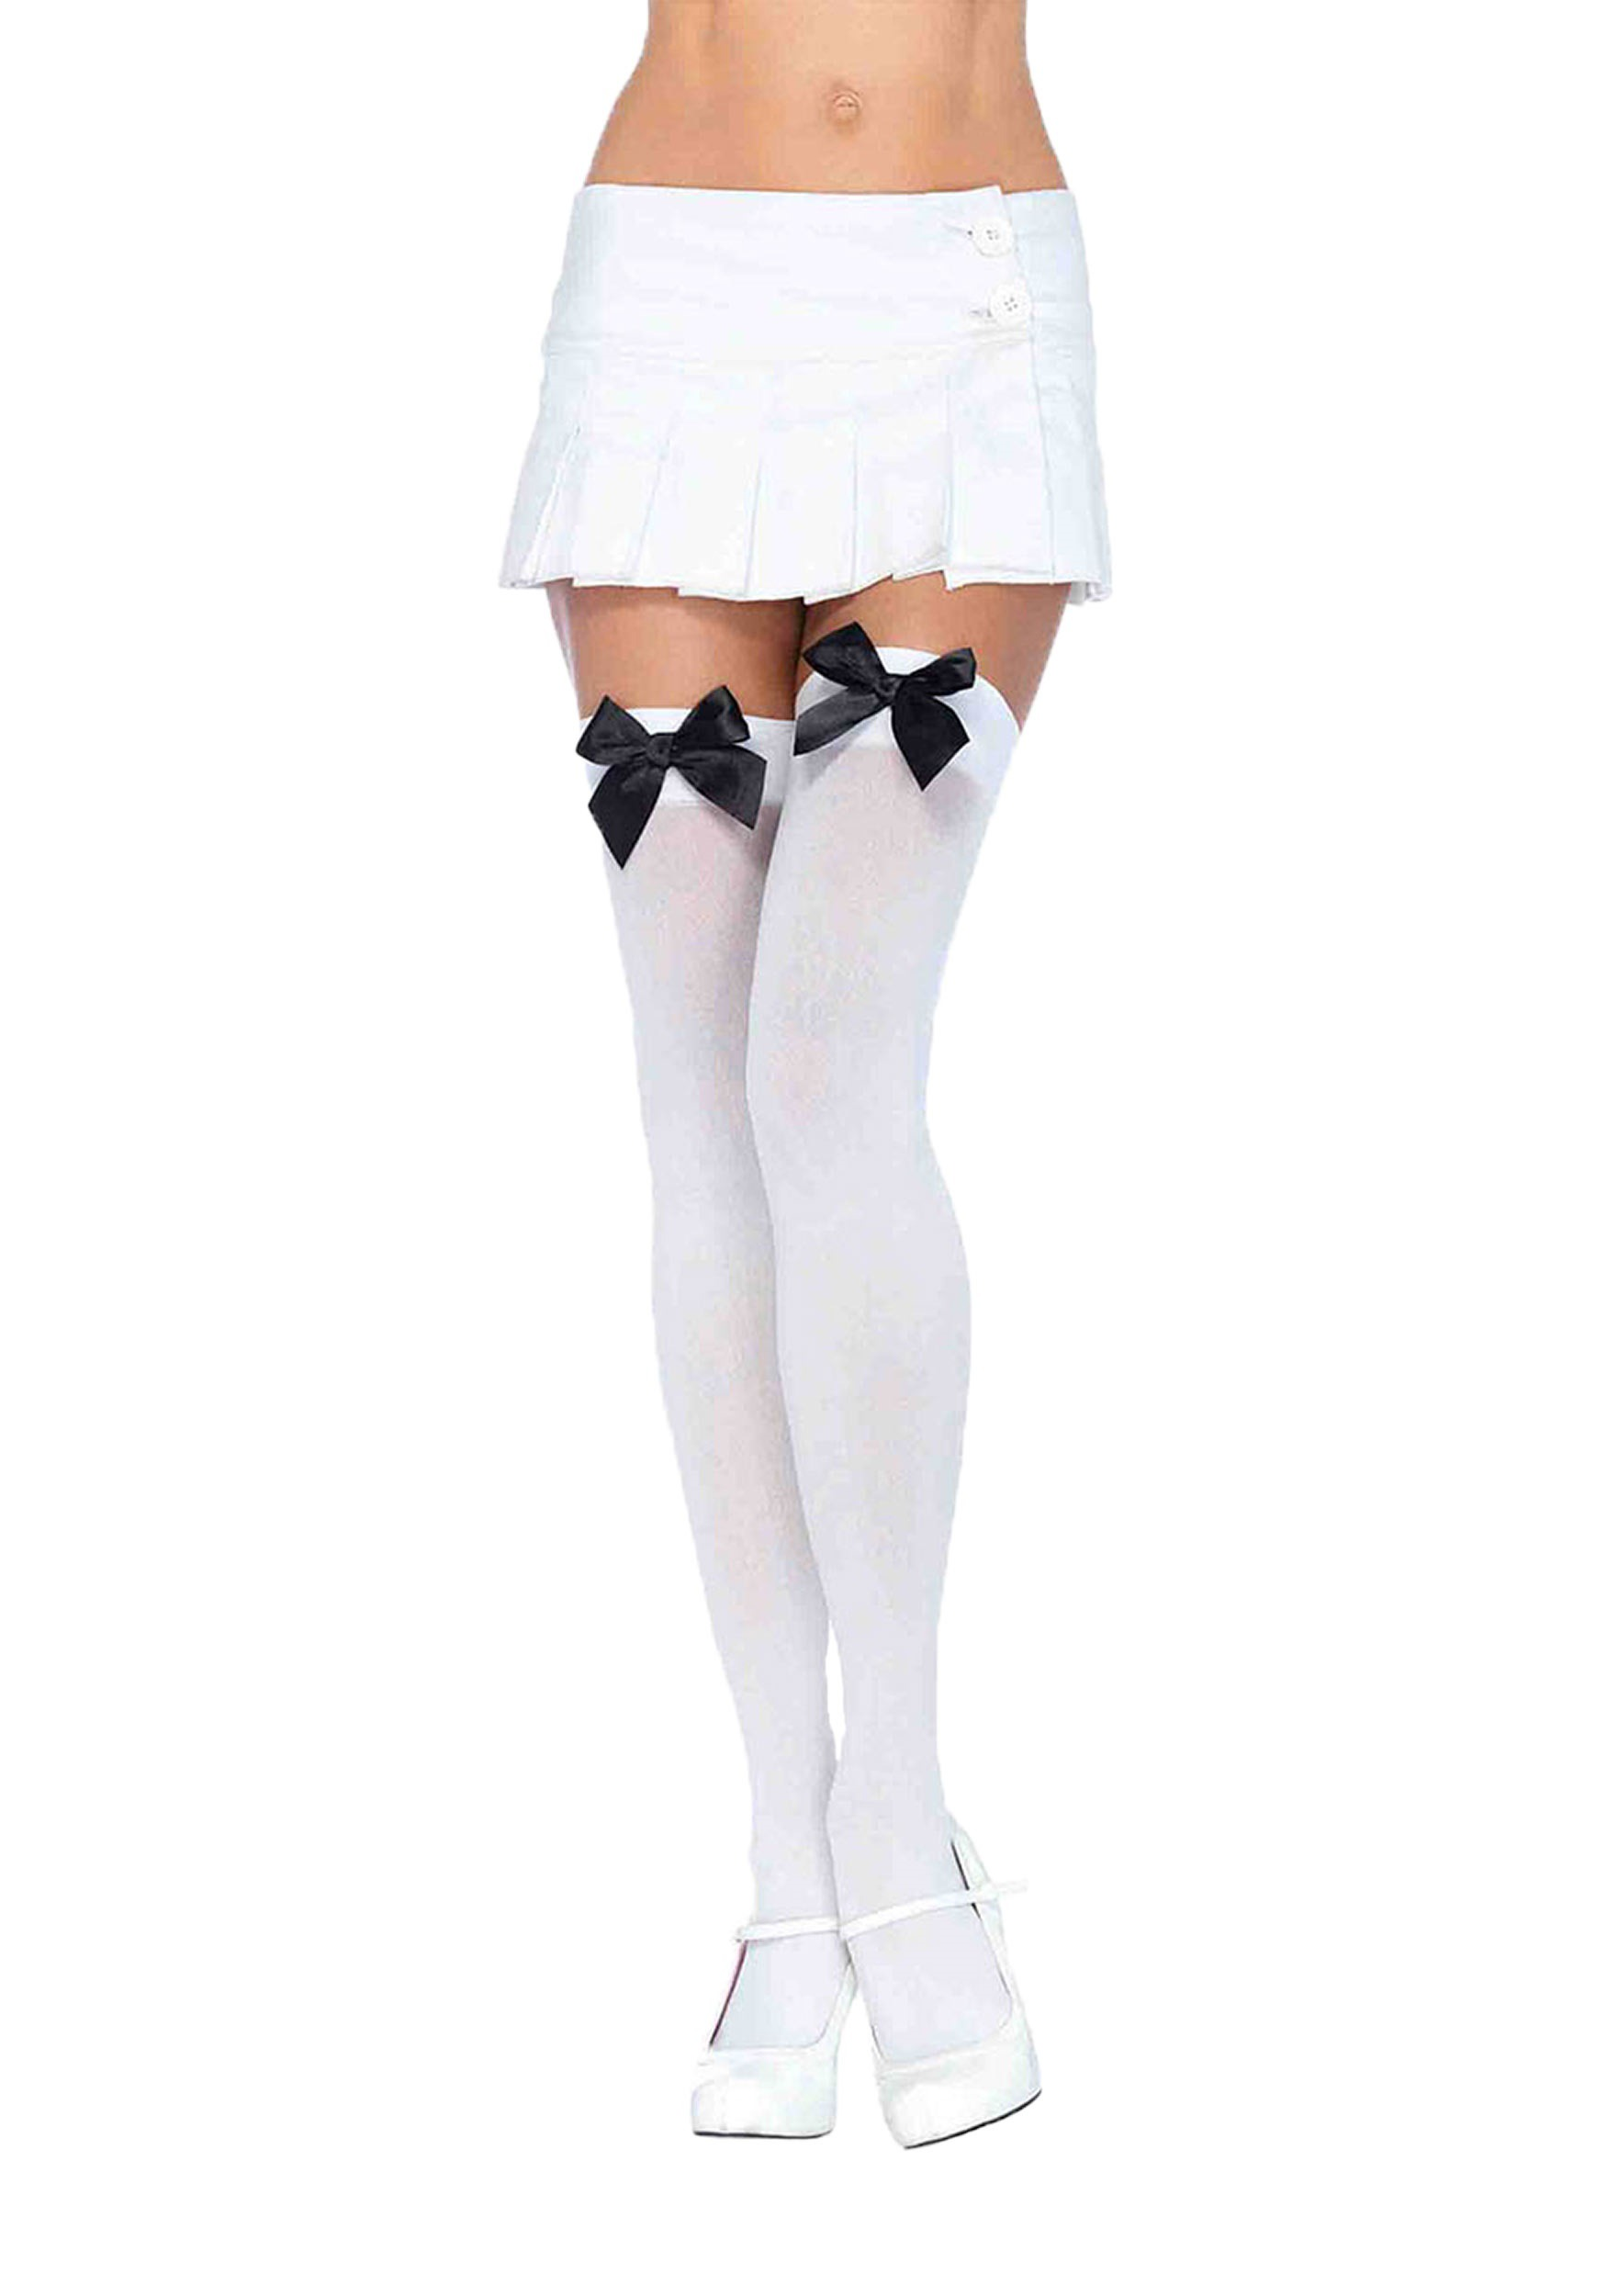 3339a4c38237ac white-stockings-with-black-bows.jpg